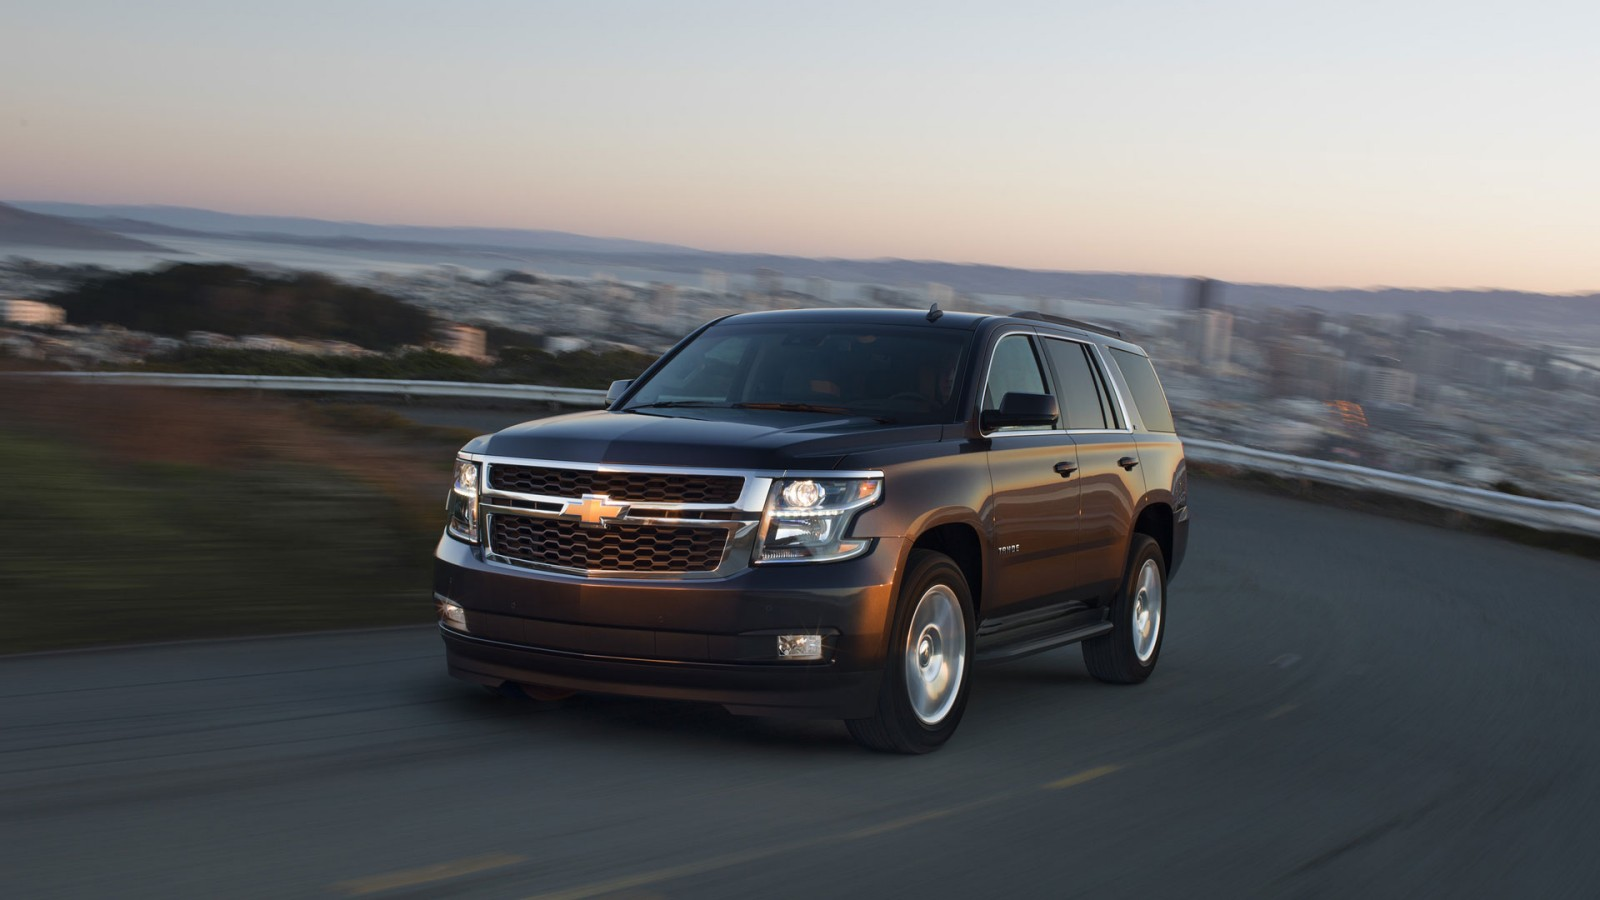 New Chevrolet Tahoe Lease And Finance Offers Richmond Ky 2015 Chevy Ltz Exterior Main Image